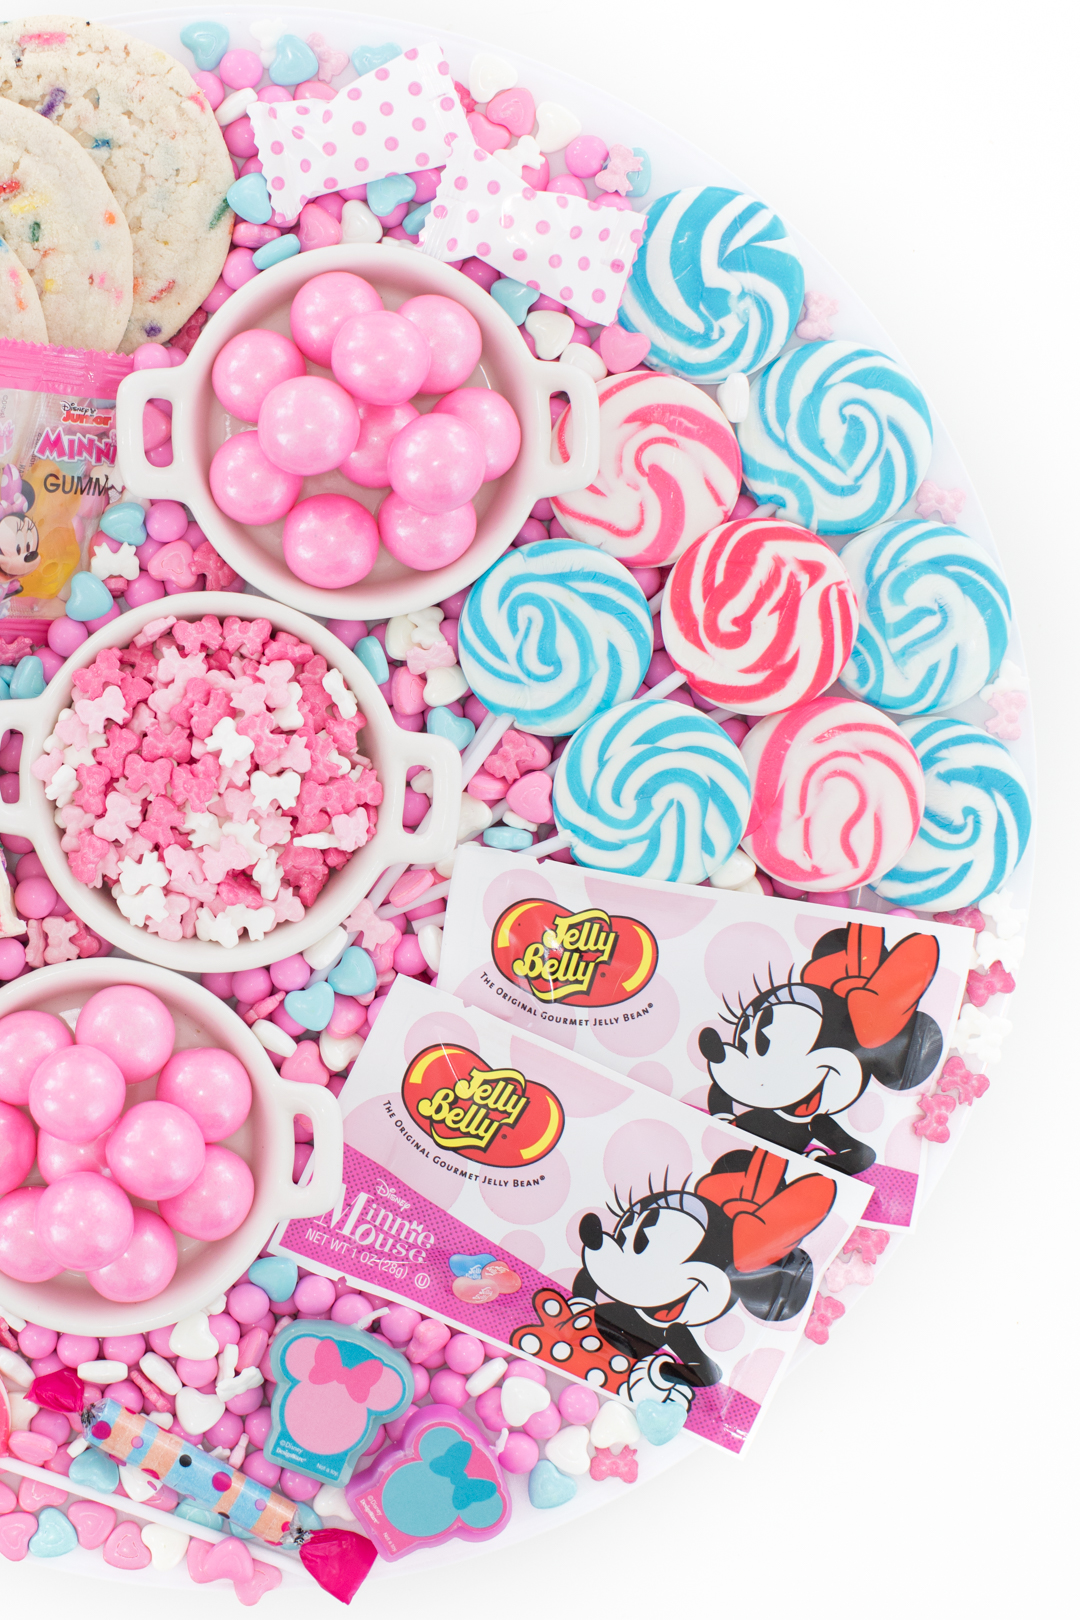 spread of pretty minnie mouse inspired candies for parties